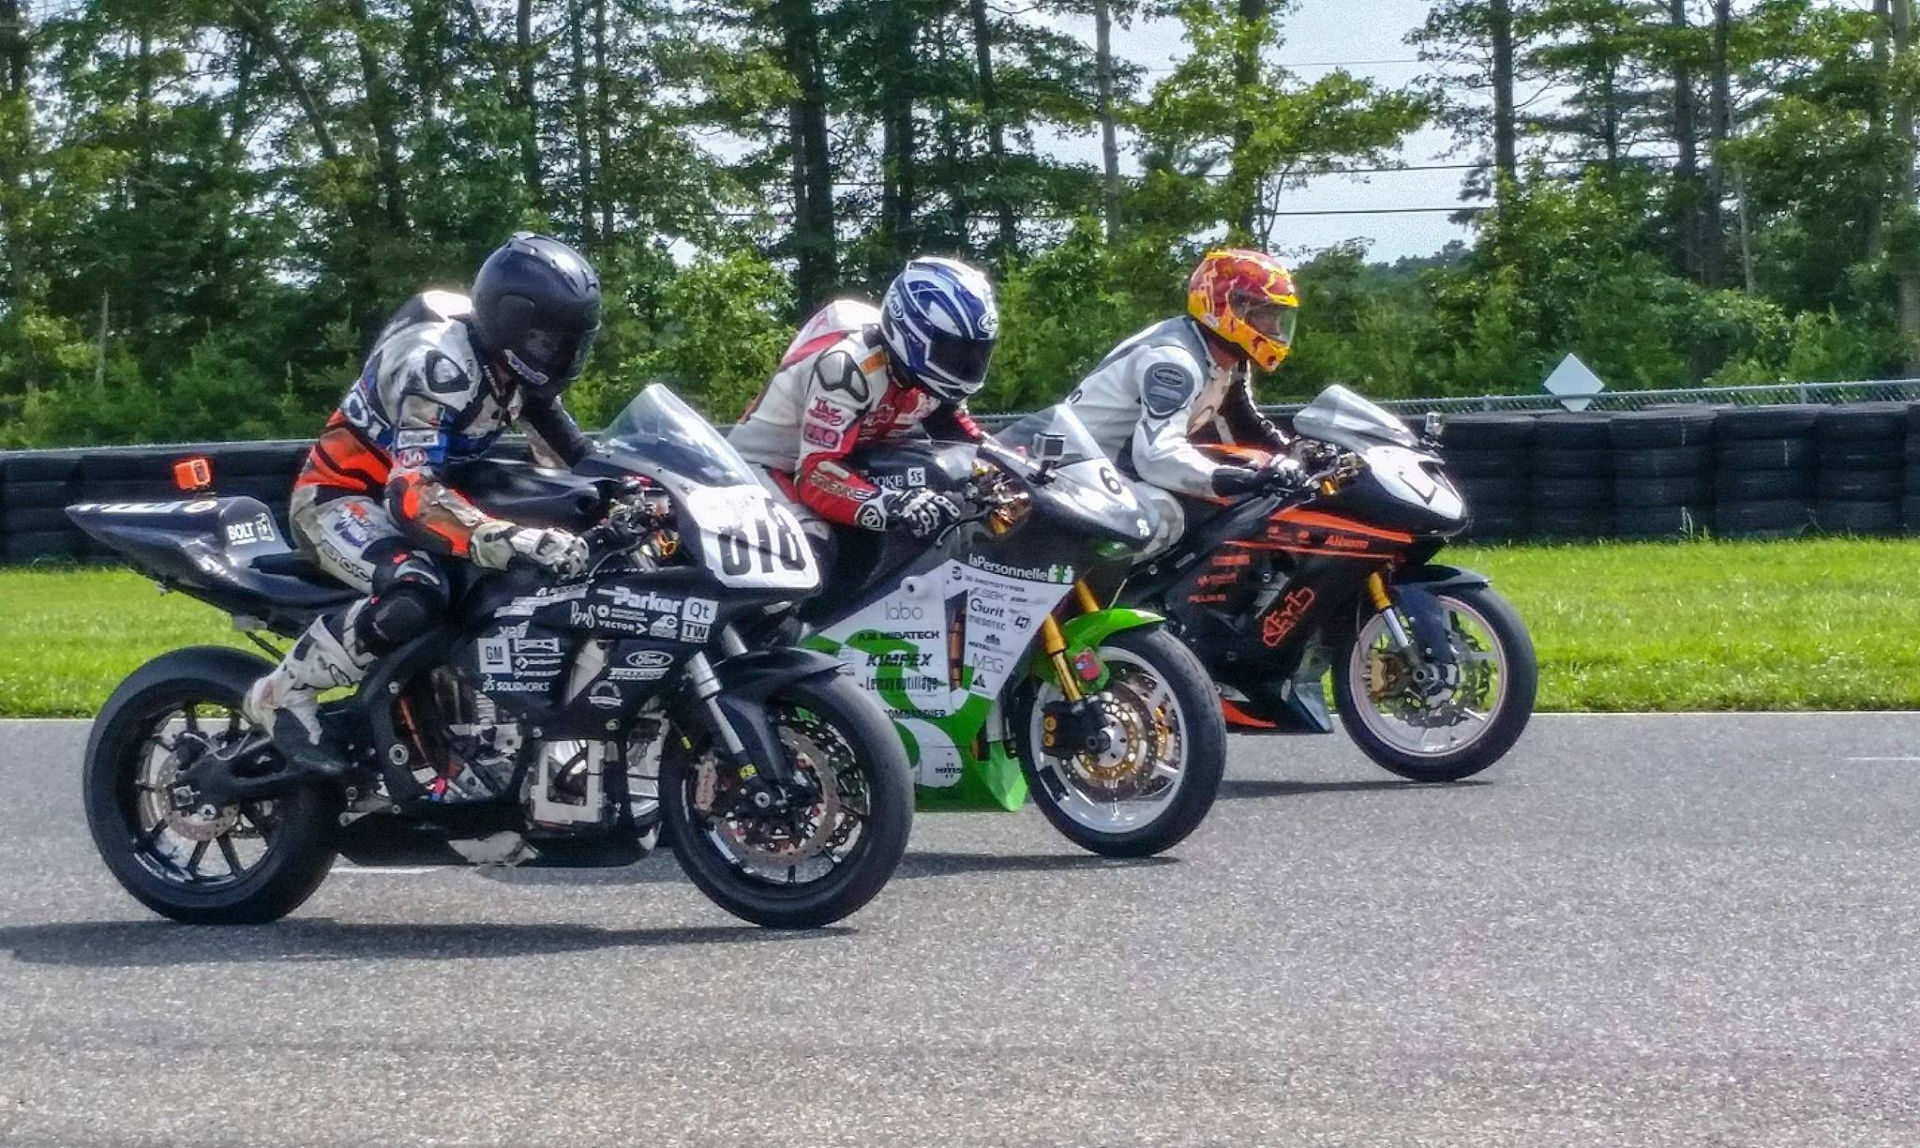 Electric motorcycles as built by students at (from left) Virginia Tech, the University of Sherbrooke in Quebec, and the Rochester Institute of Technology at AHRMA's 2019 Varsity Challenge. Photo courtesy of AHRMA.